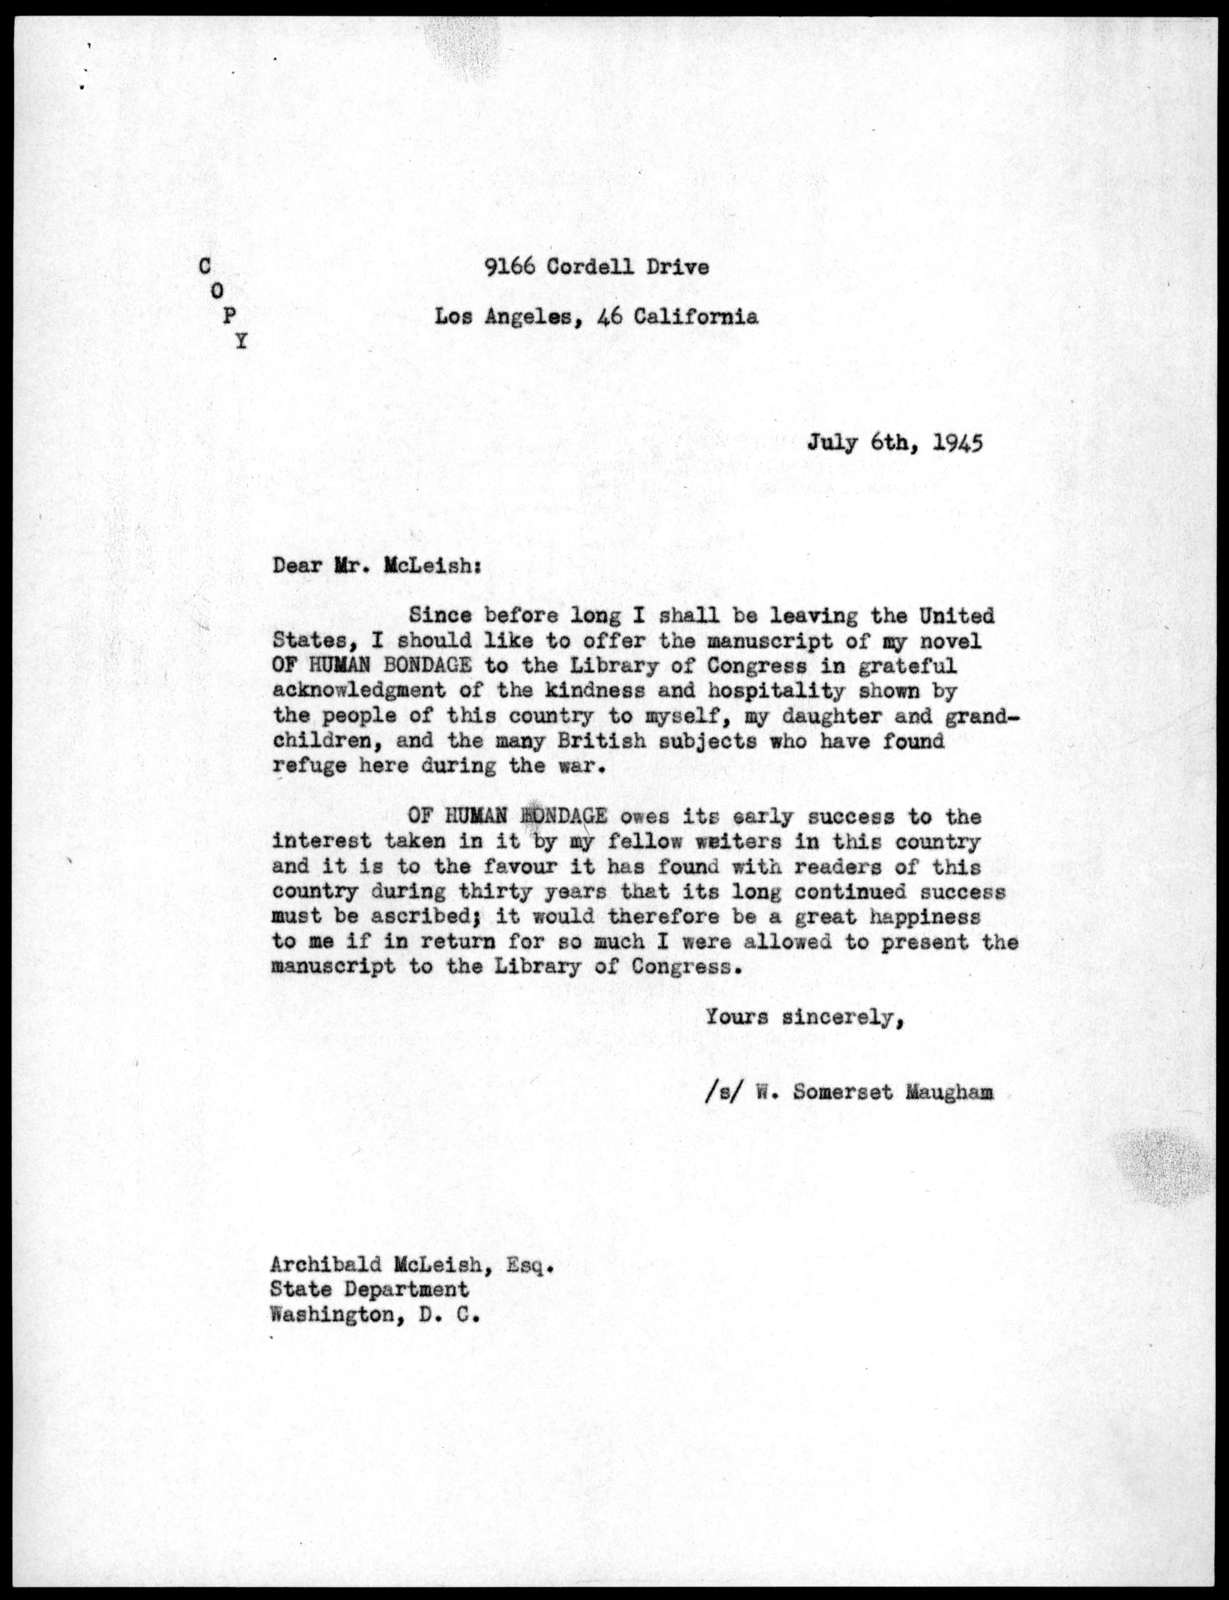 Letter from W. Somerset Maugham to Archibald MacLeish, July 6, 1945